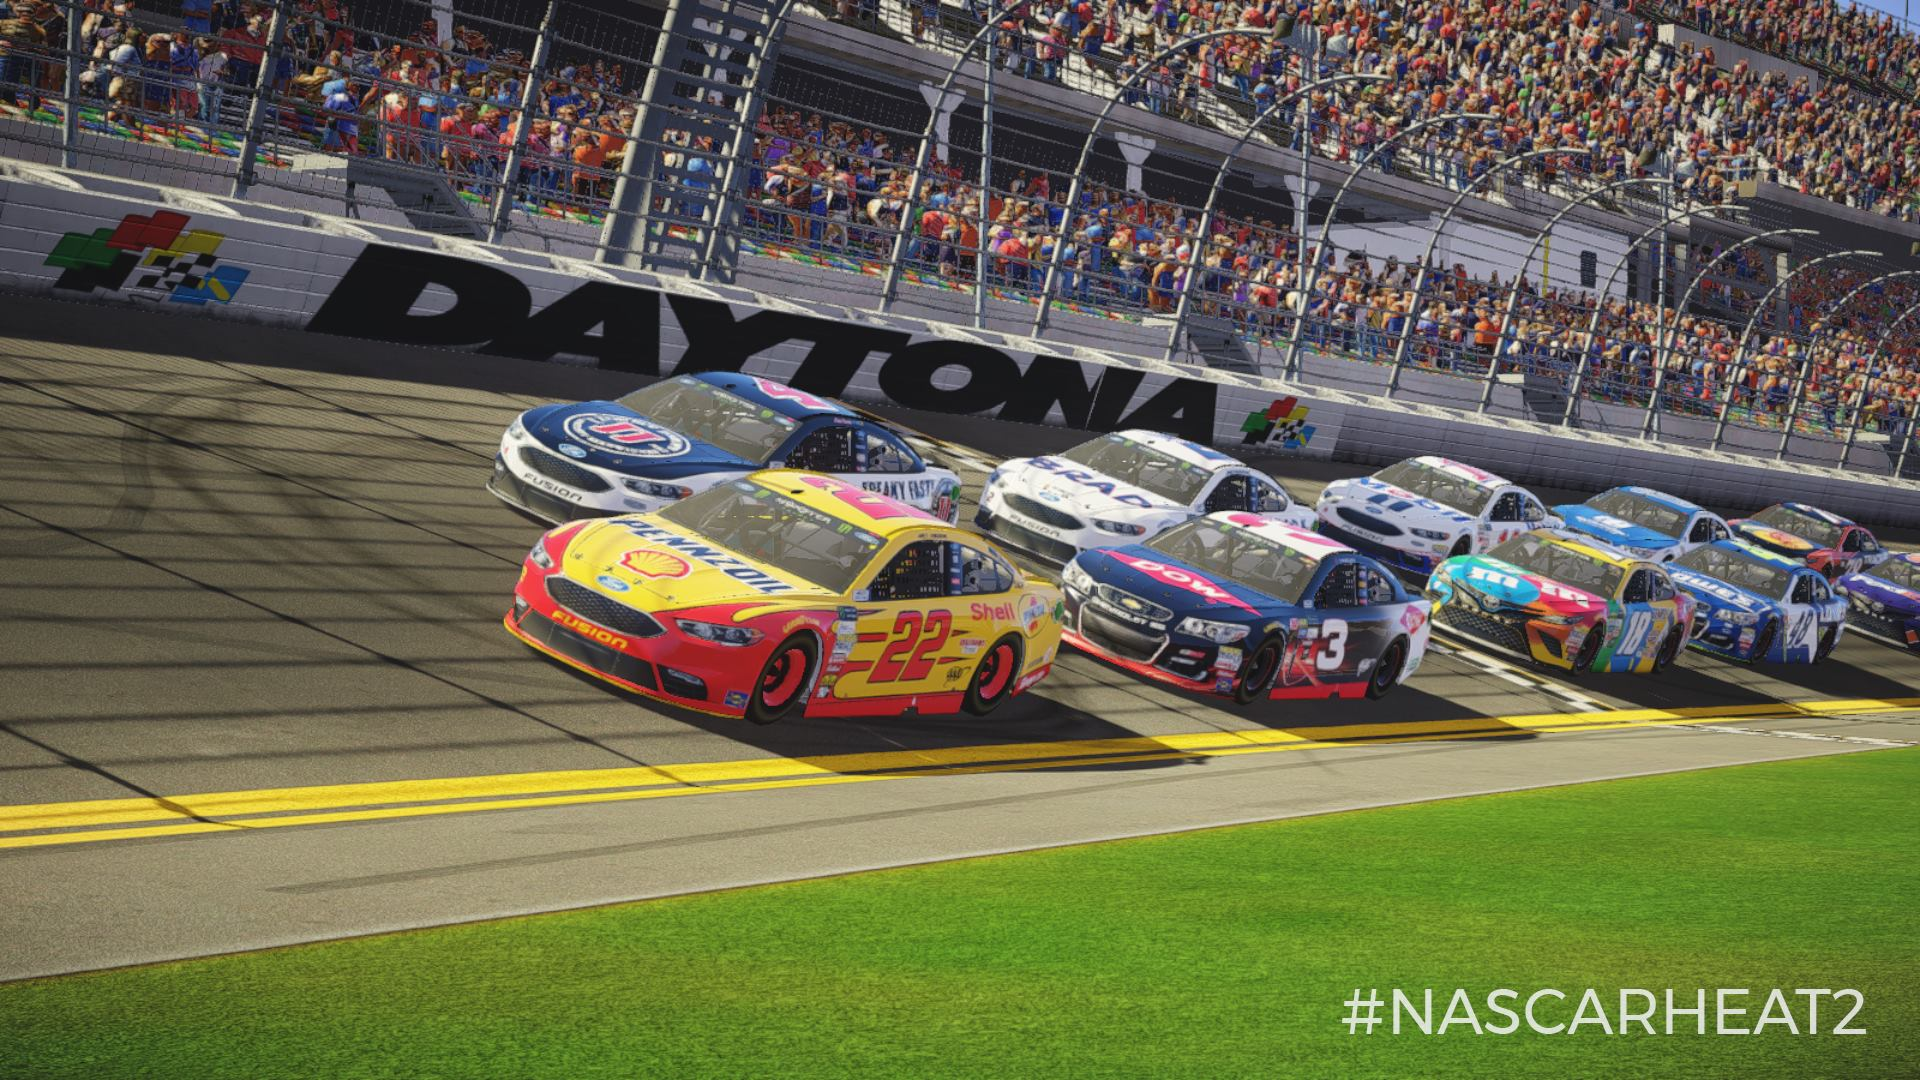 NASCAR Heat 2 to feature content from all three major NASCAR series